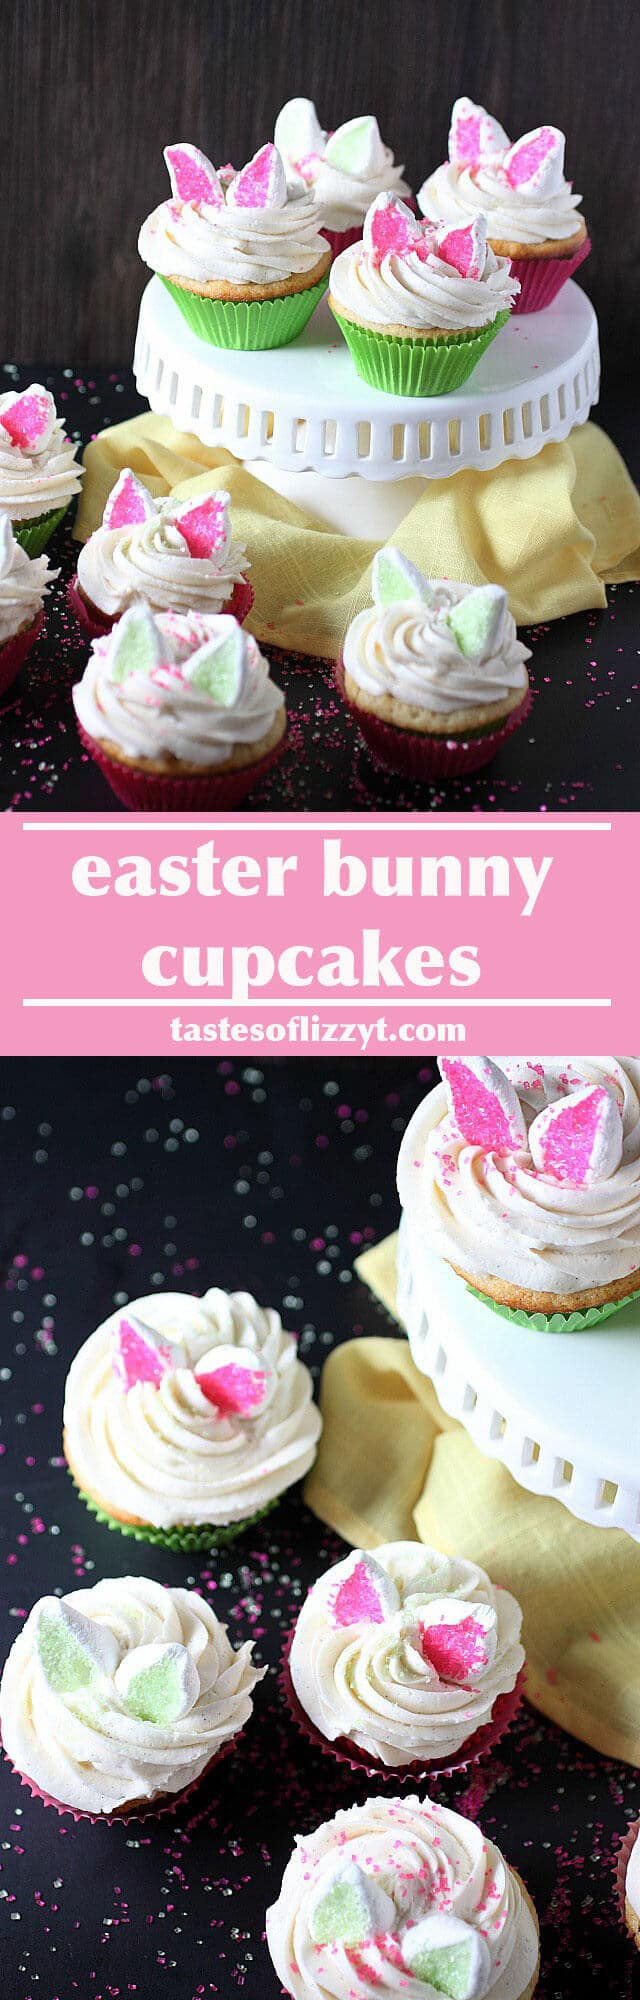 Easter Bunny Cupcakes recipe / easter cupcakes / bunny cupcake / easter dessert recipe / kids cupcakes / marshmallow bunny ears